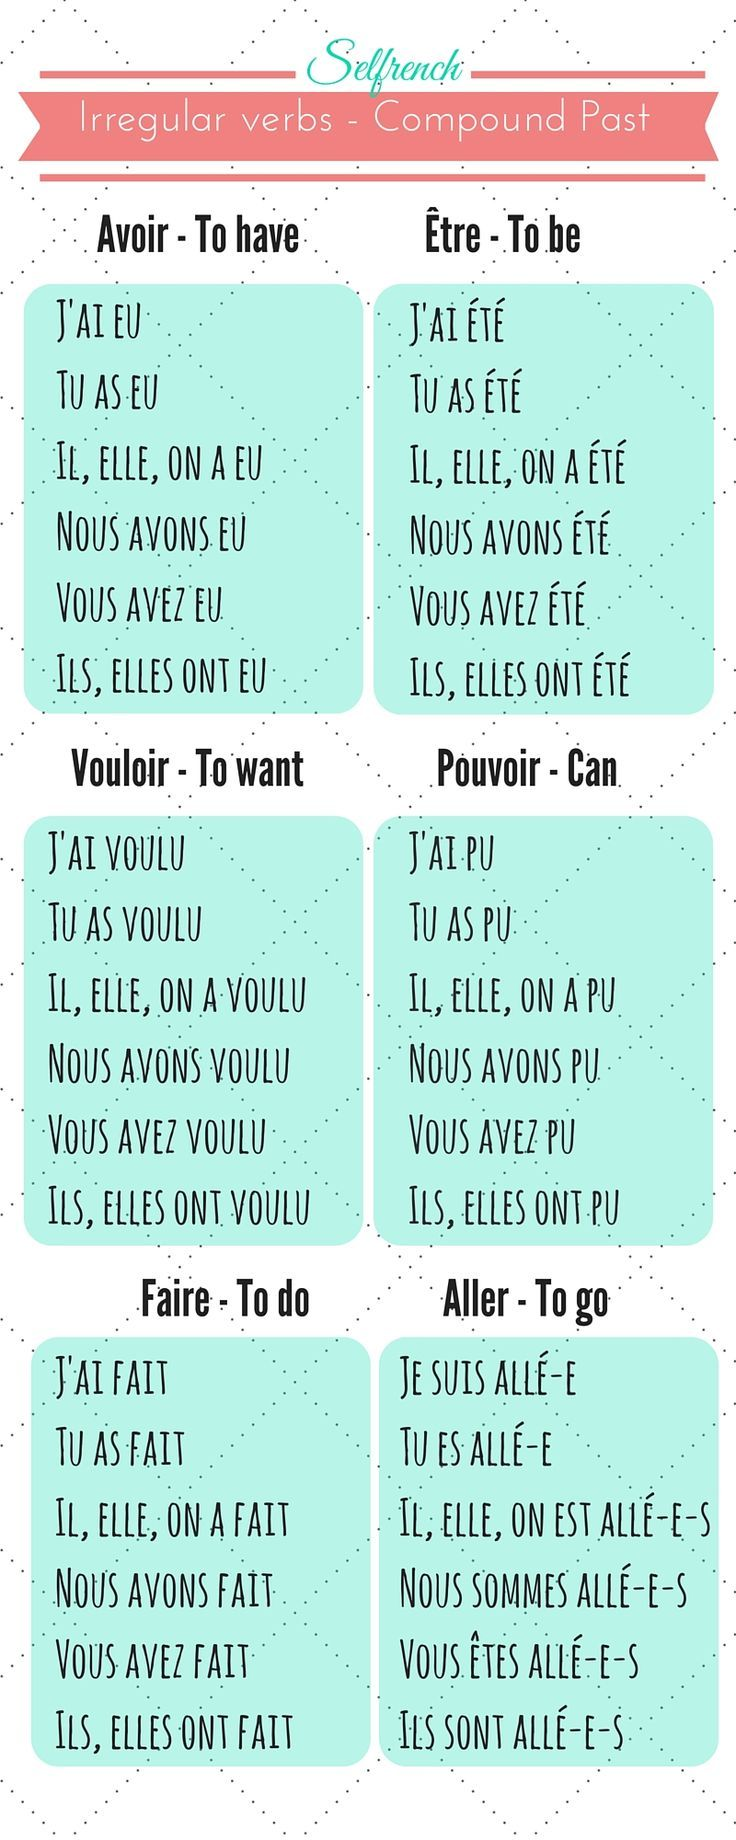 pin by itz on social media marketing learn french french online french lessons. Black Bedroom Furniture Sets. Home Design Ideas